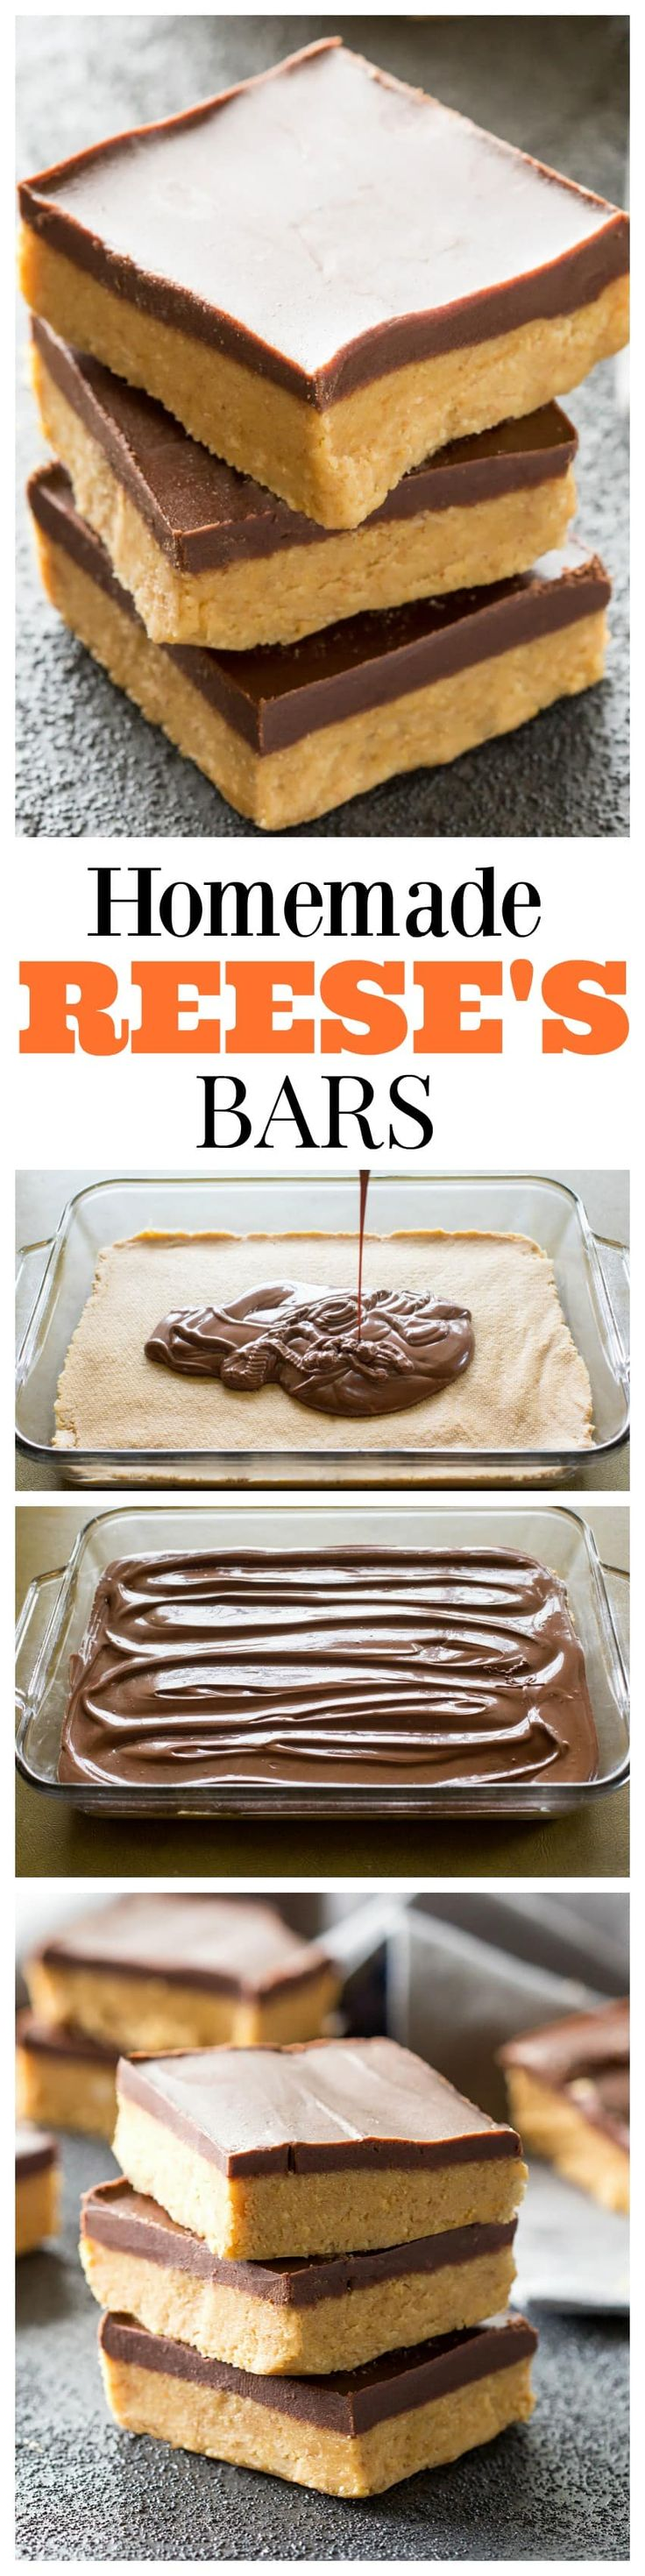 Homemade Reese's Bars - so easy you can make them at home! So good!